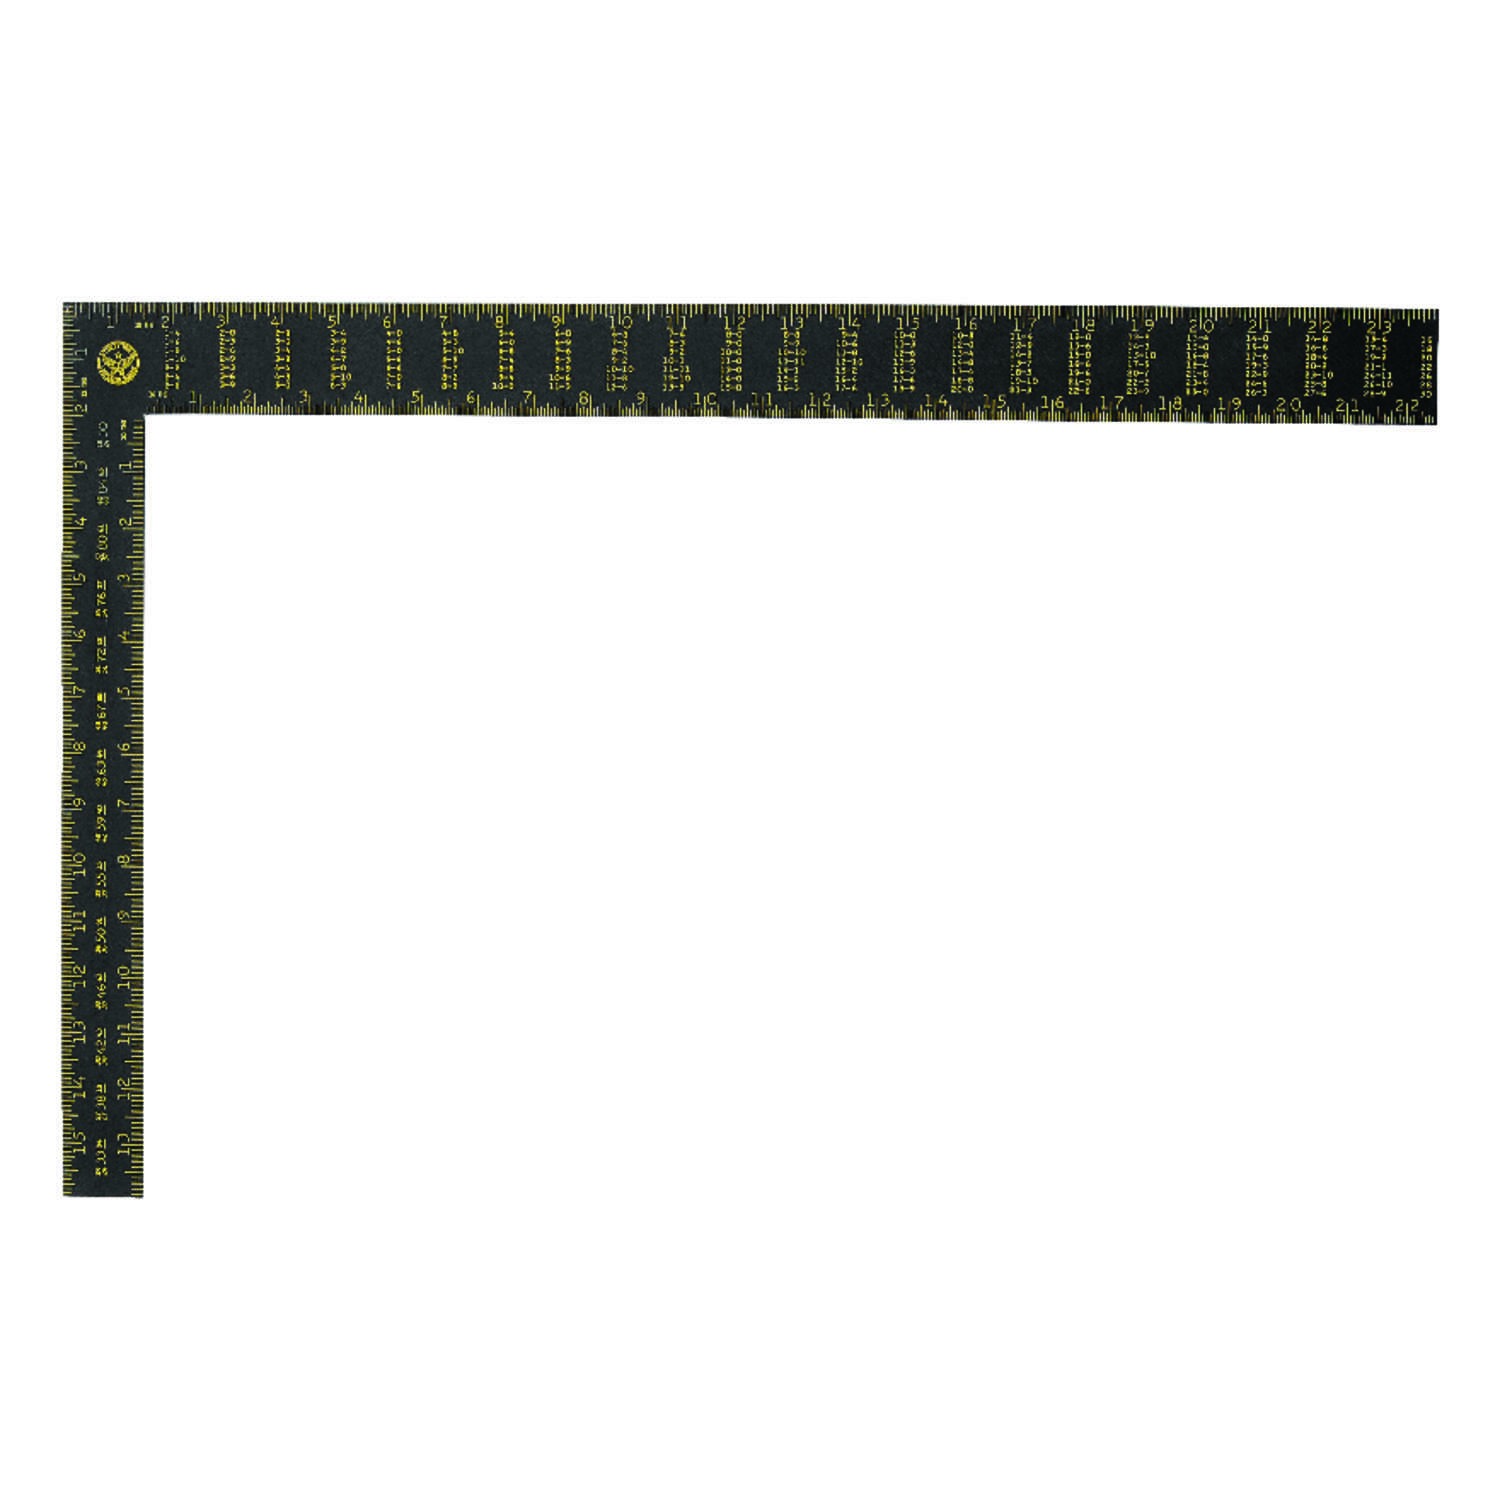 Stanley  24 in. L x 16 in. H Aluminum  Rafter Square  Black